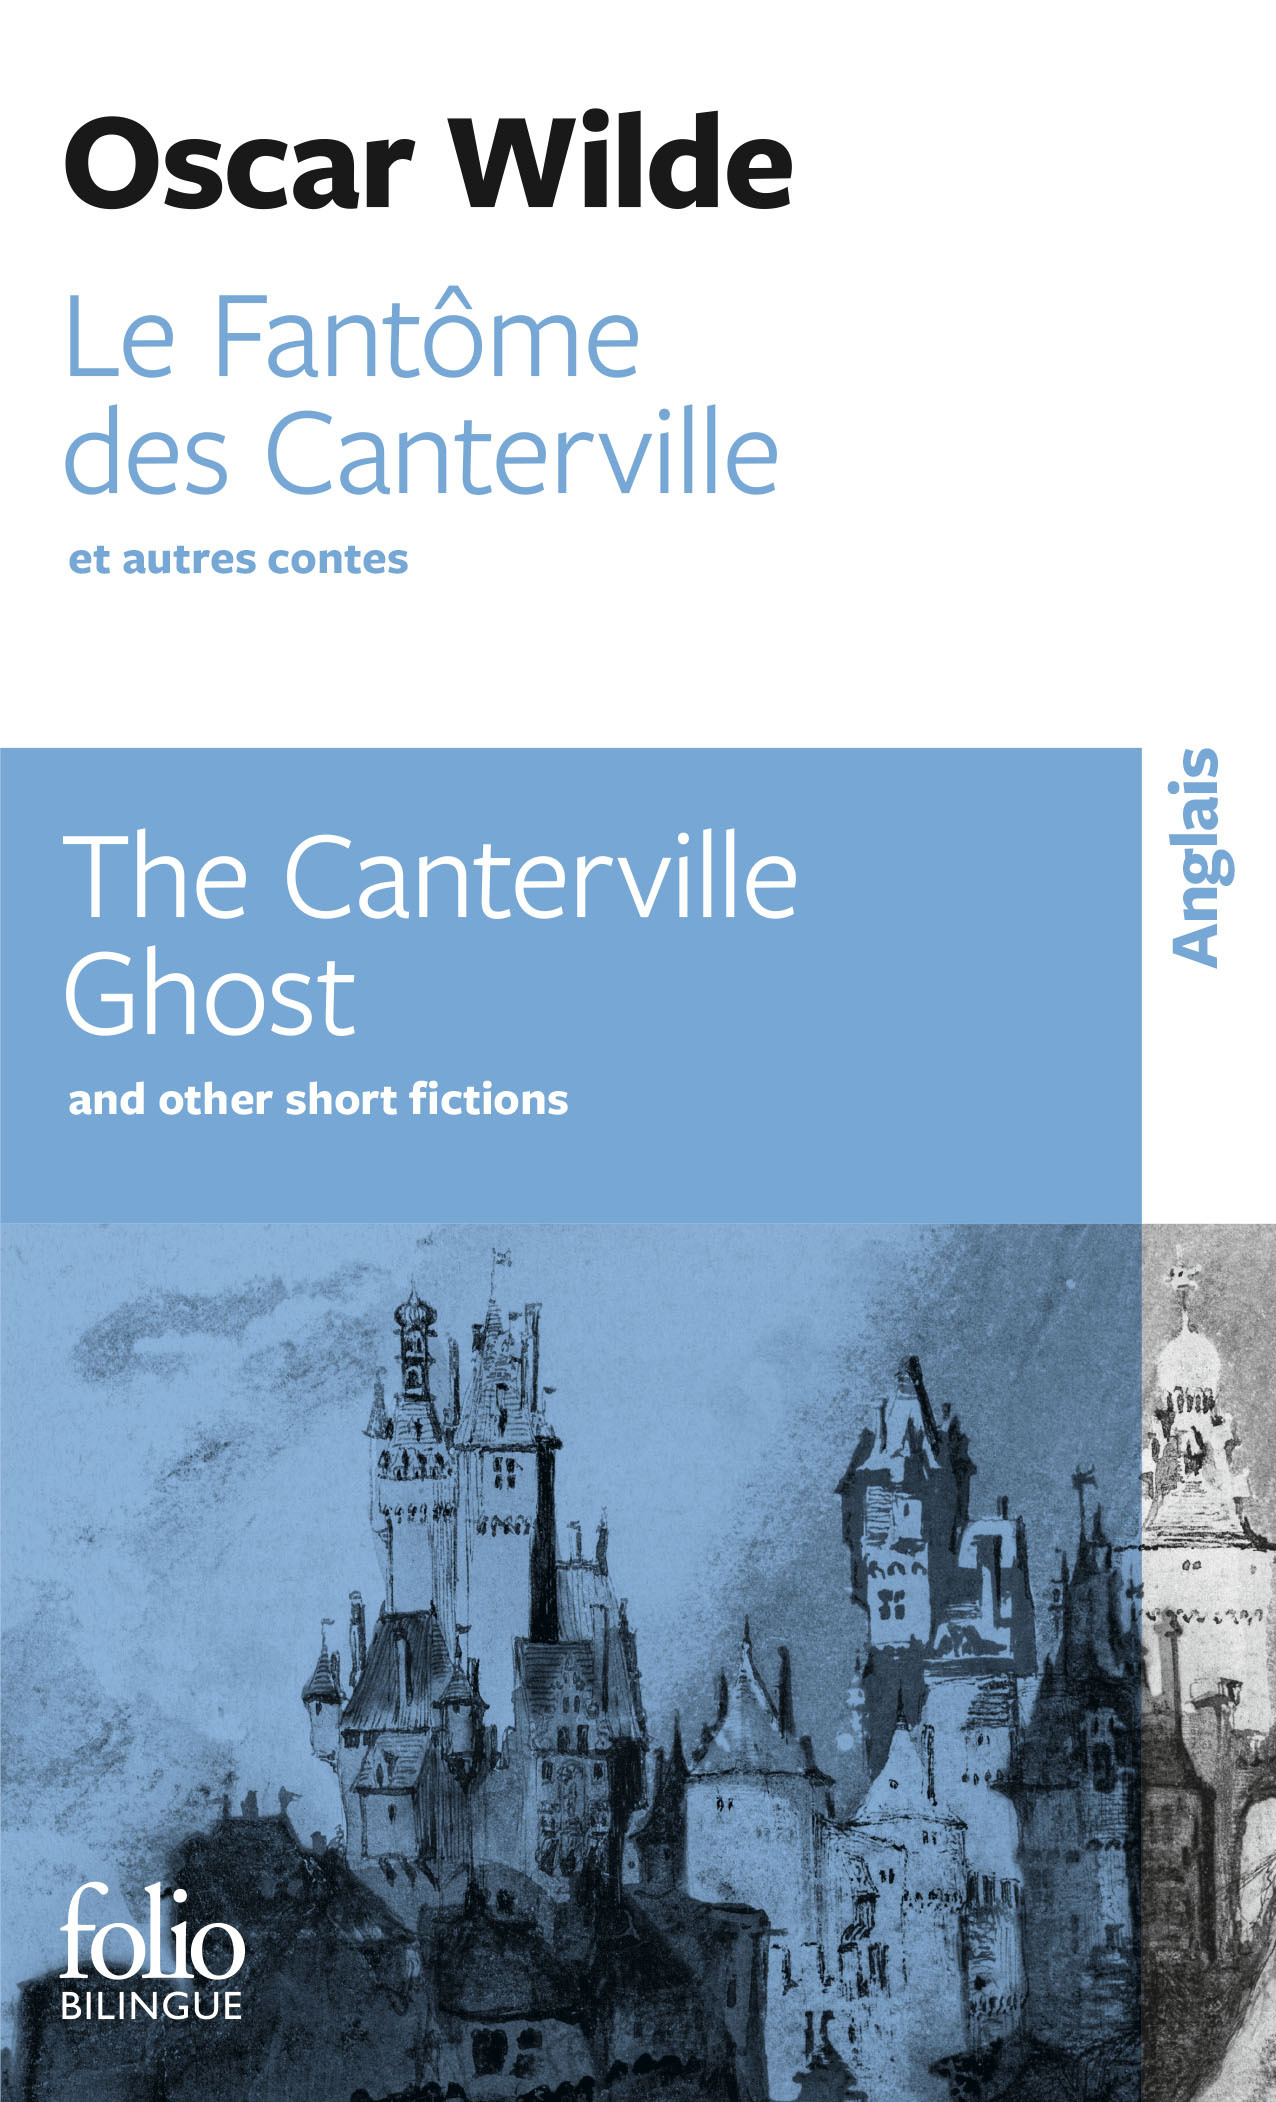 THE CANTERVILLE GHOST AND OTHER SHORT FICTIONS